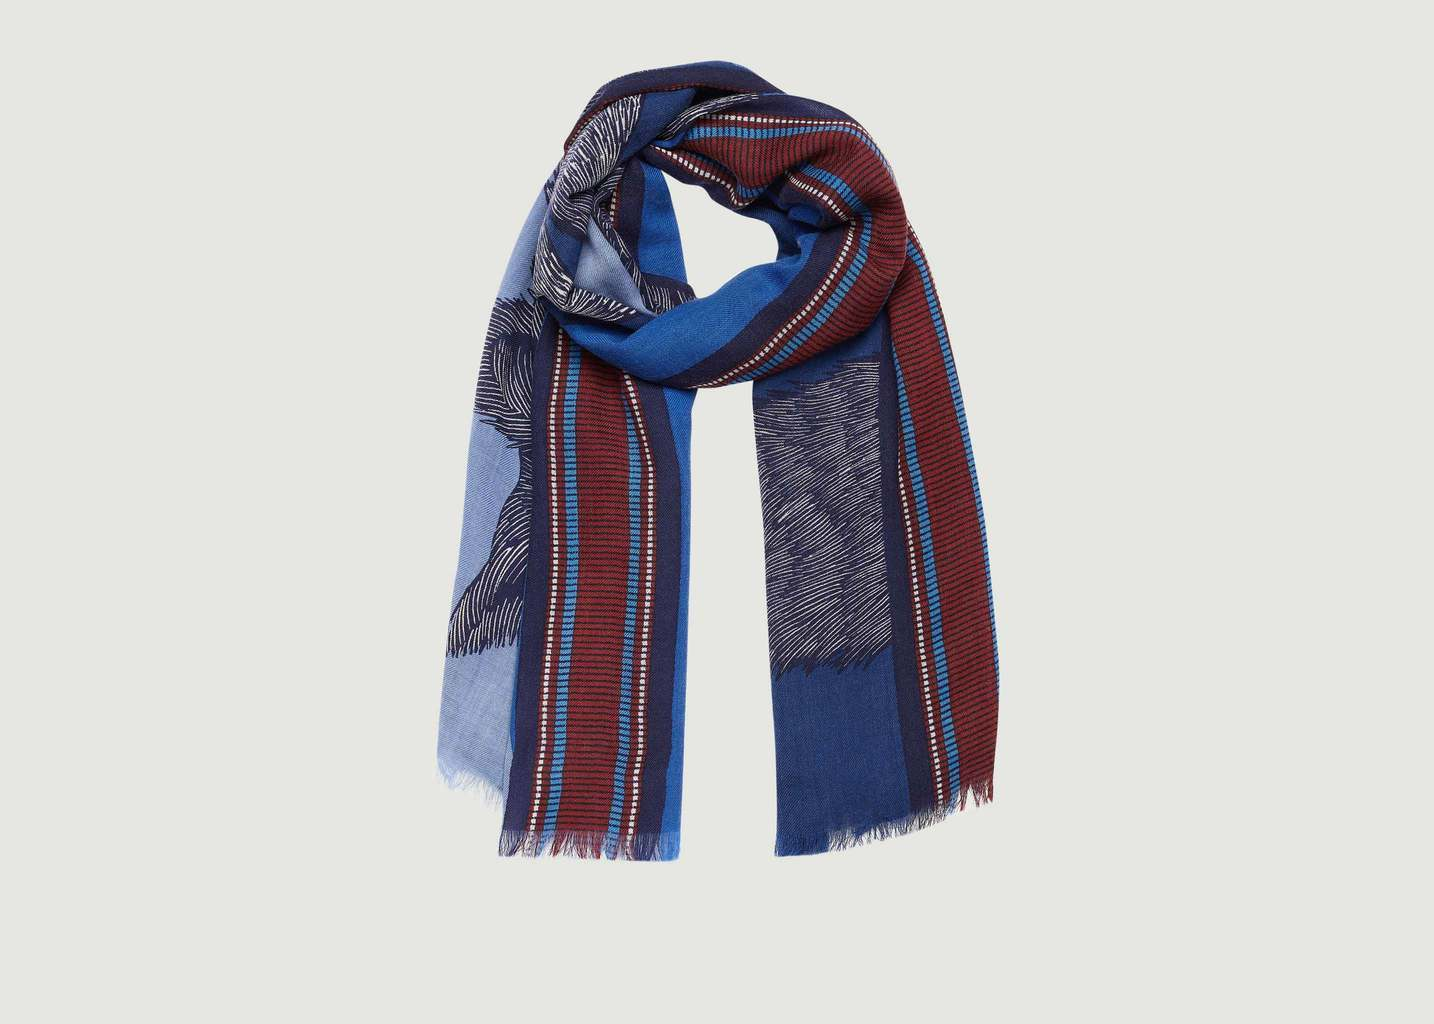 no sale tax new arrival outlet online Foulard Soto 100x190